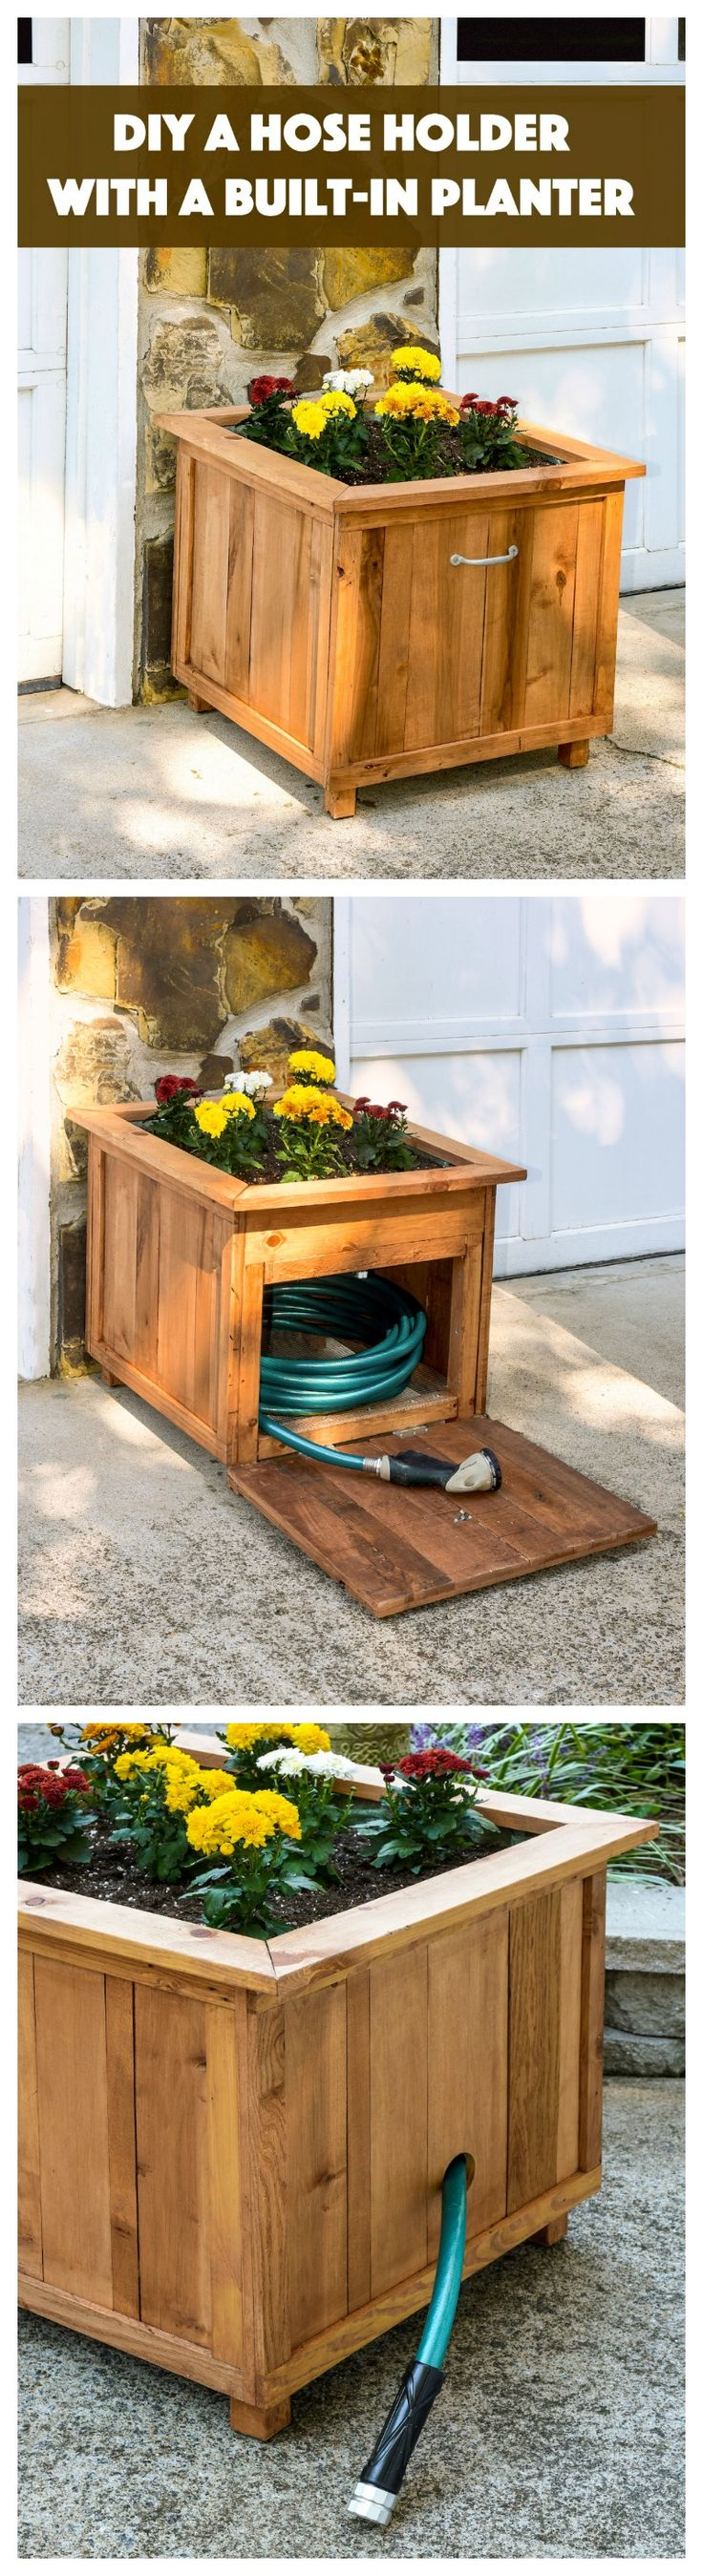 best 25 hose holder ideas on pinterest garden hose holder